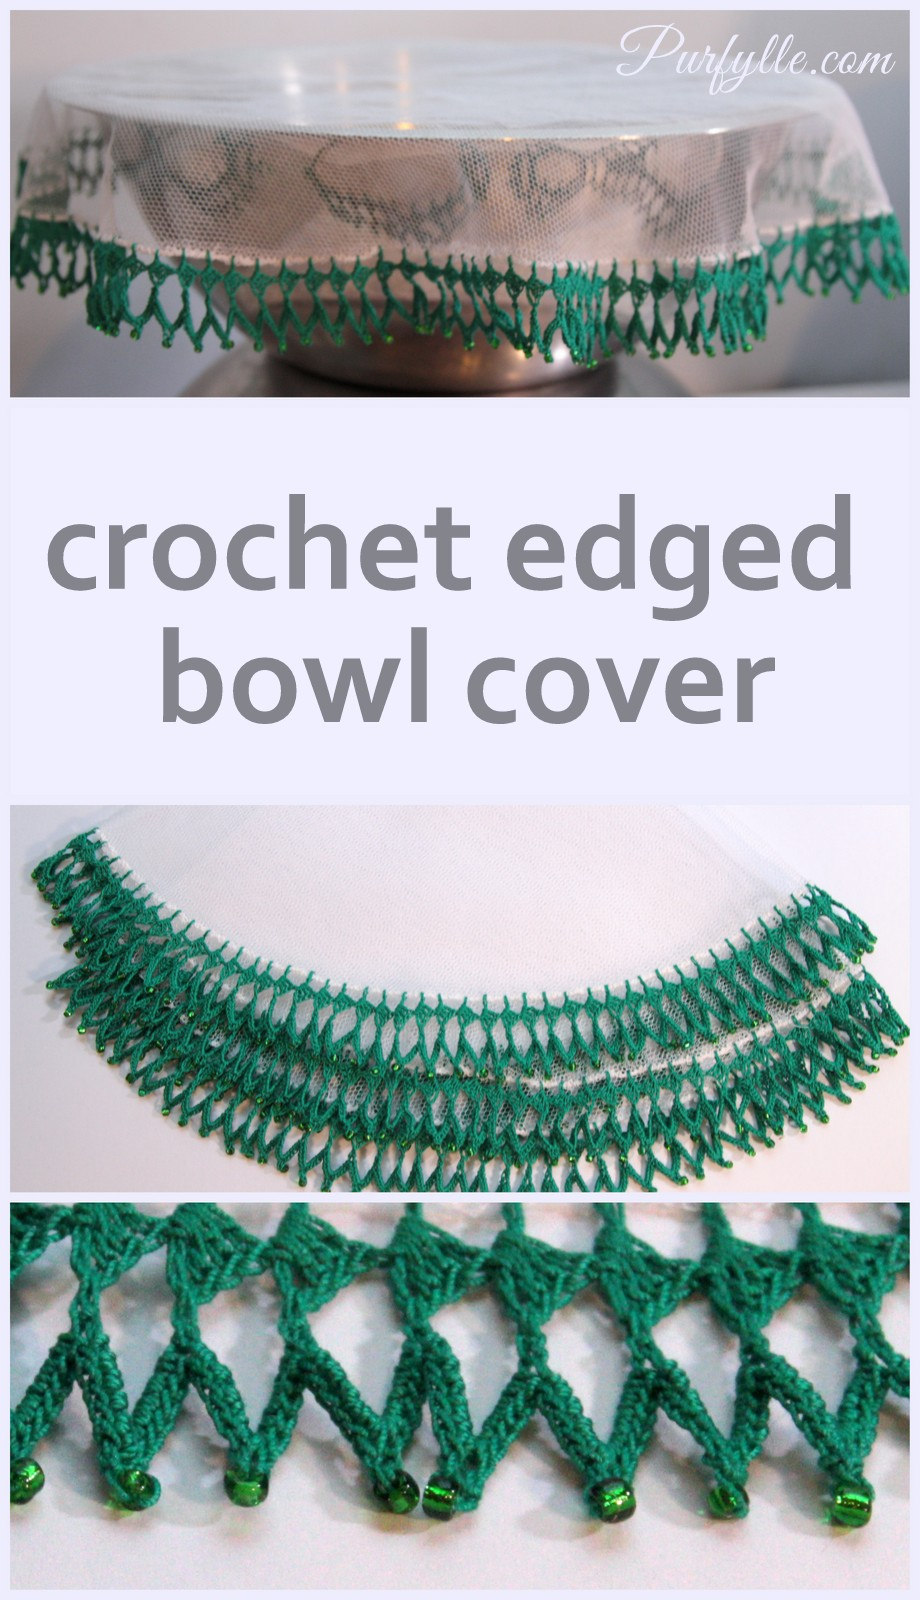 Crochet Edged Bowl Cover with seed beads